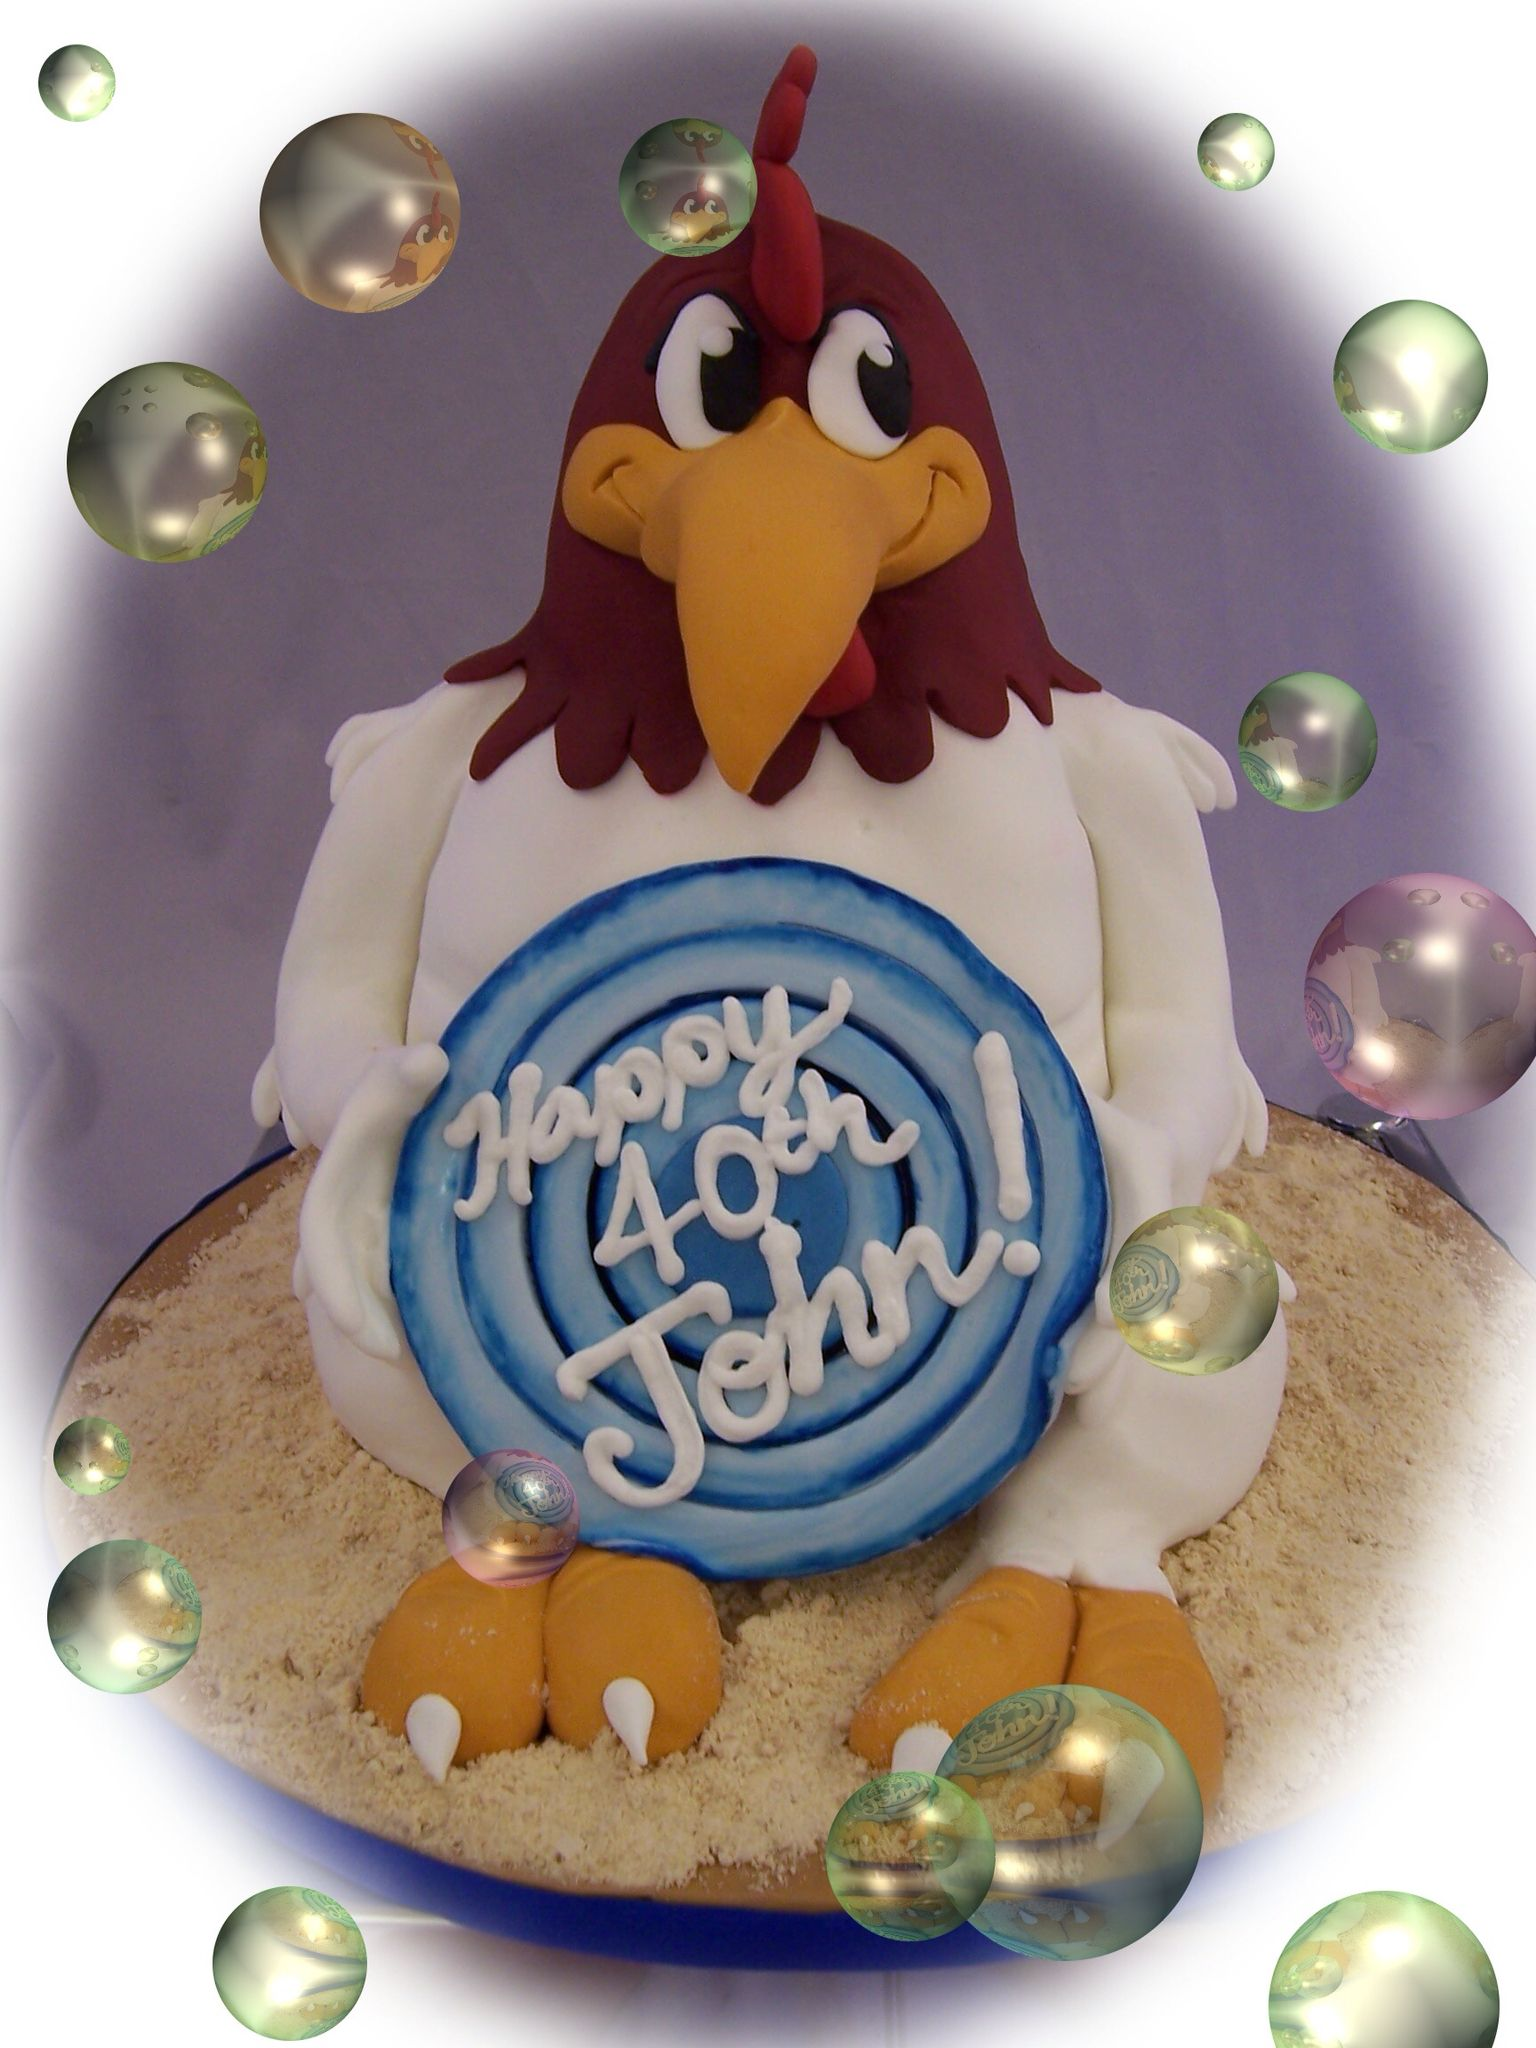 Foghorn leghorn rooster cake wwwthecakeboxcouk with